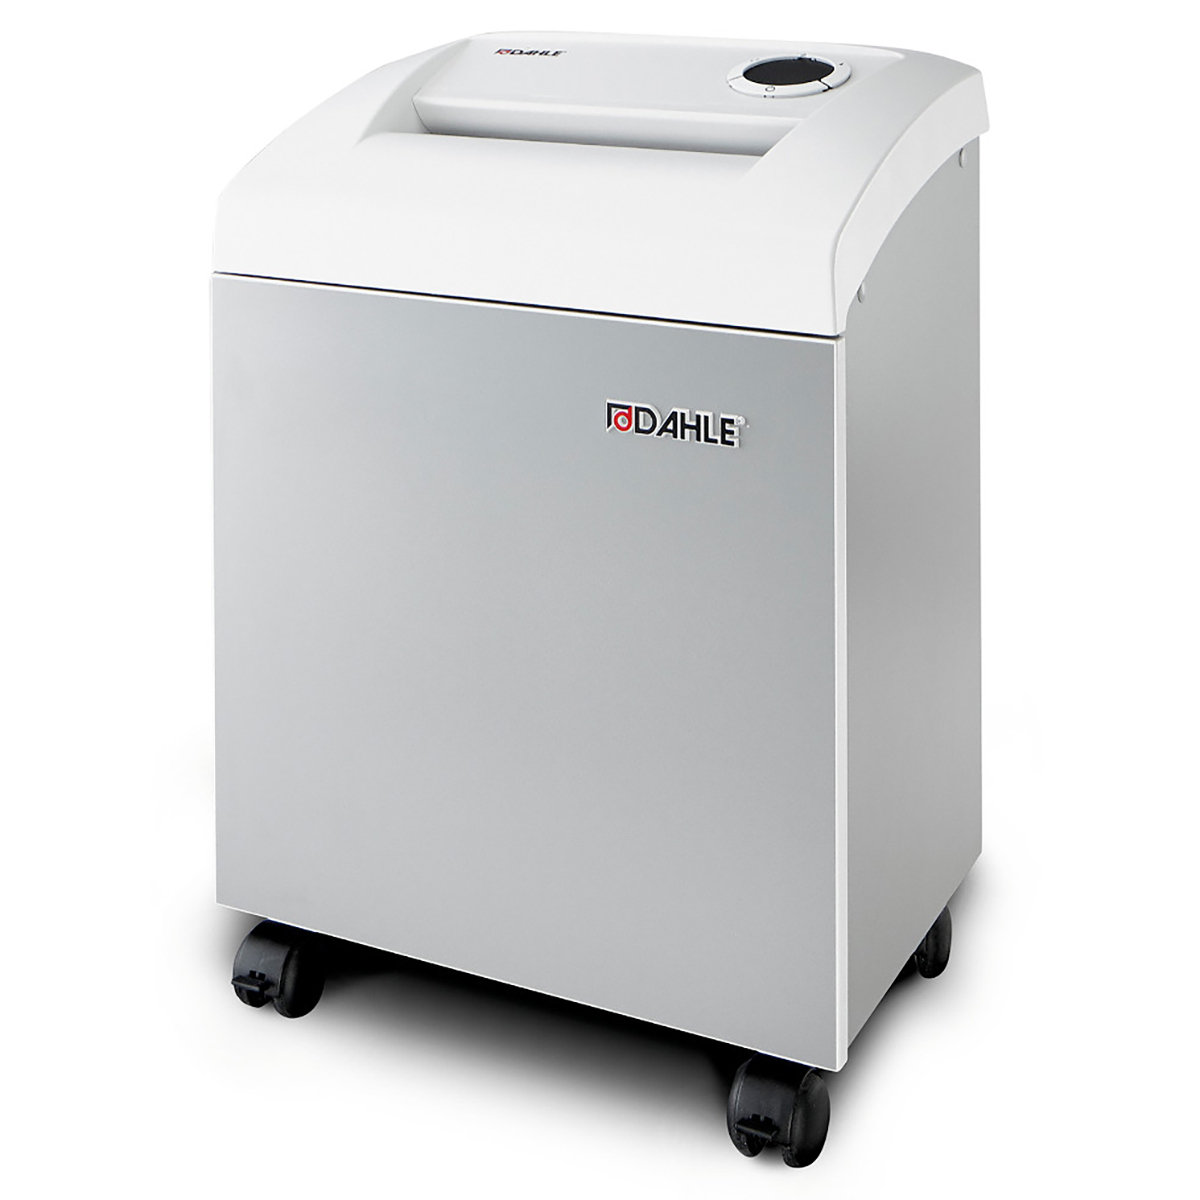 Dahle 410 Clean Tec Professional Cross cut Shredder